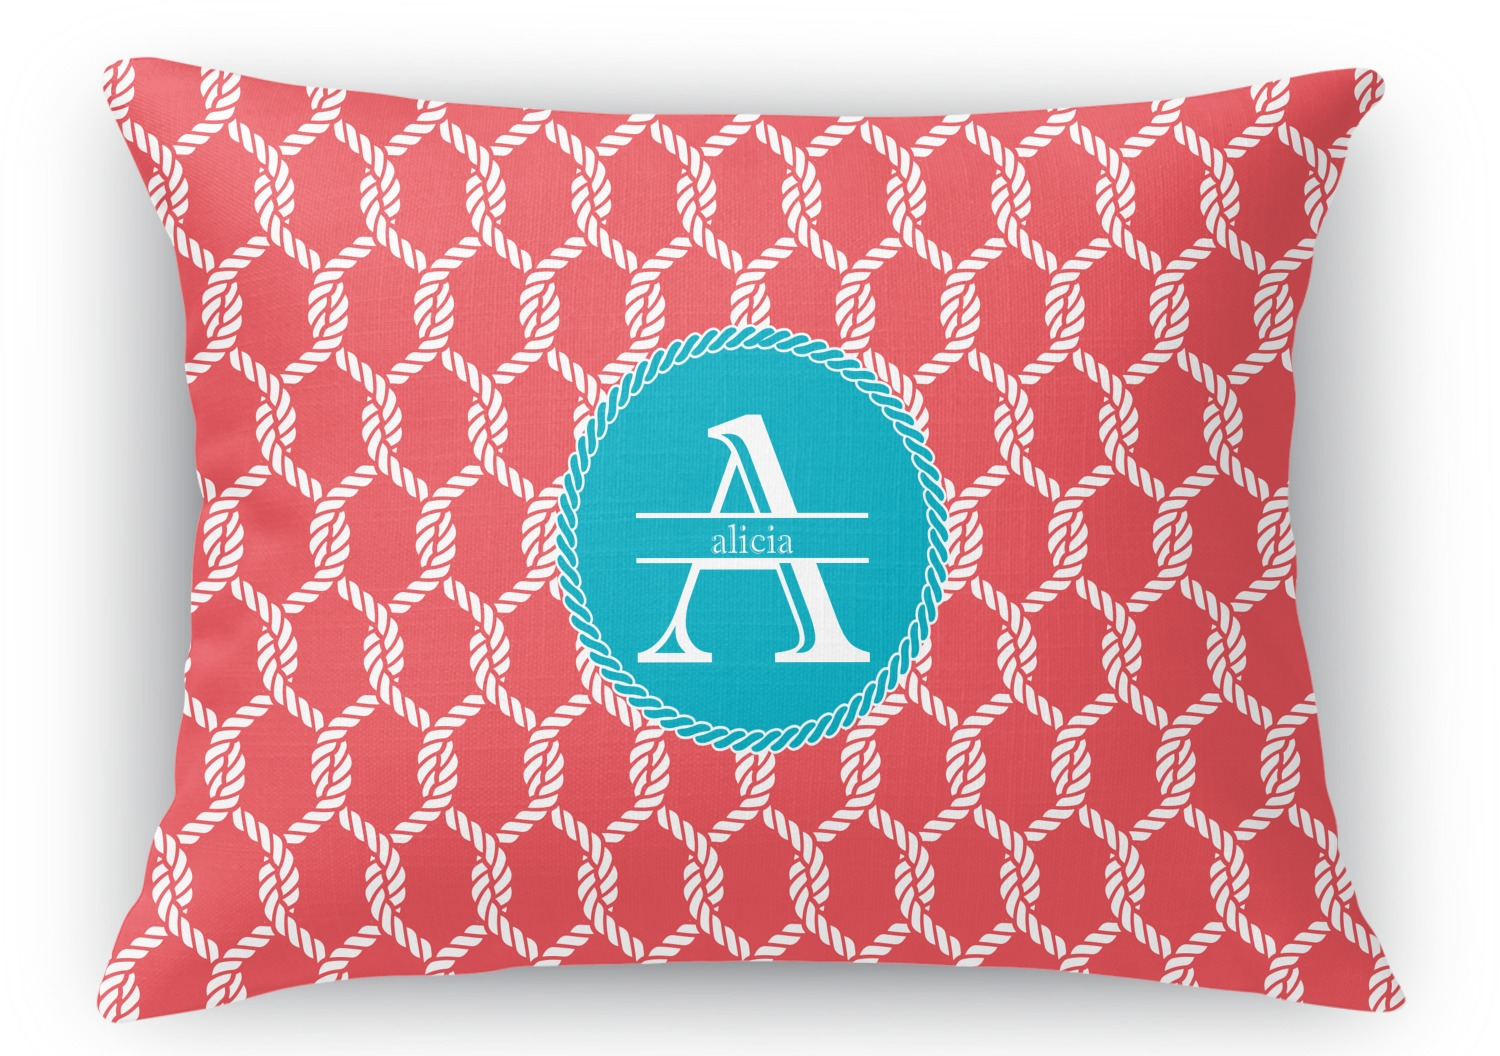 Rectangular Throw Pillow Dimensions : Linked Rope Rectangular Throw Pillow - 18